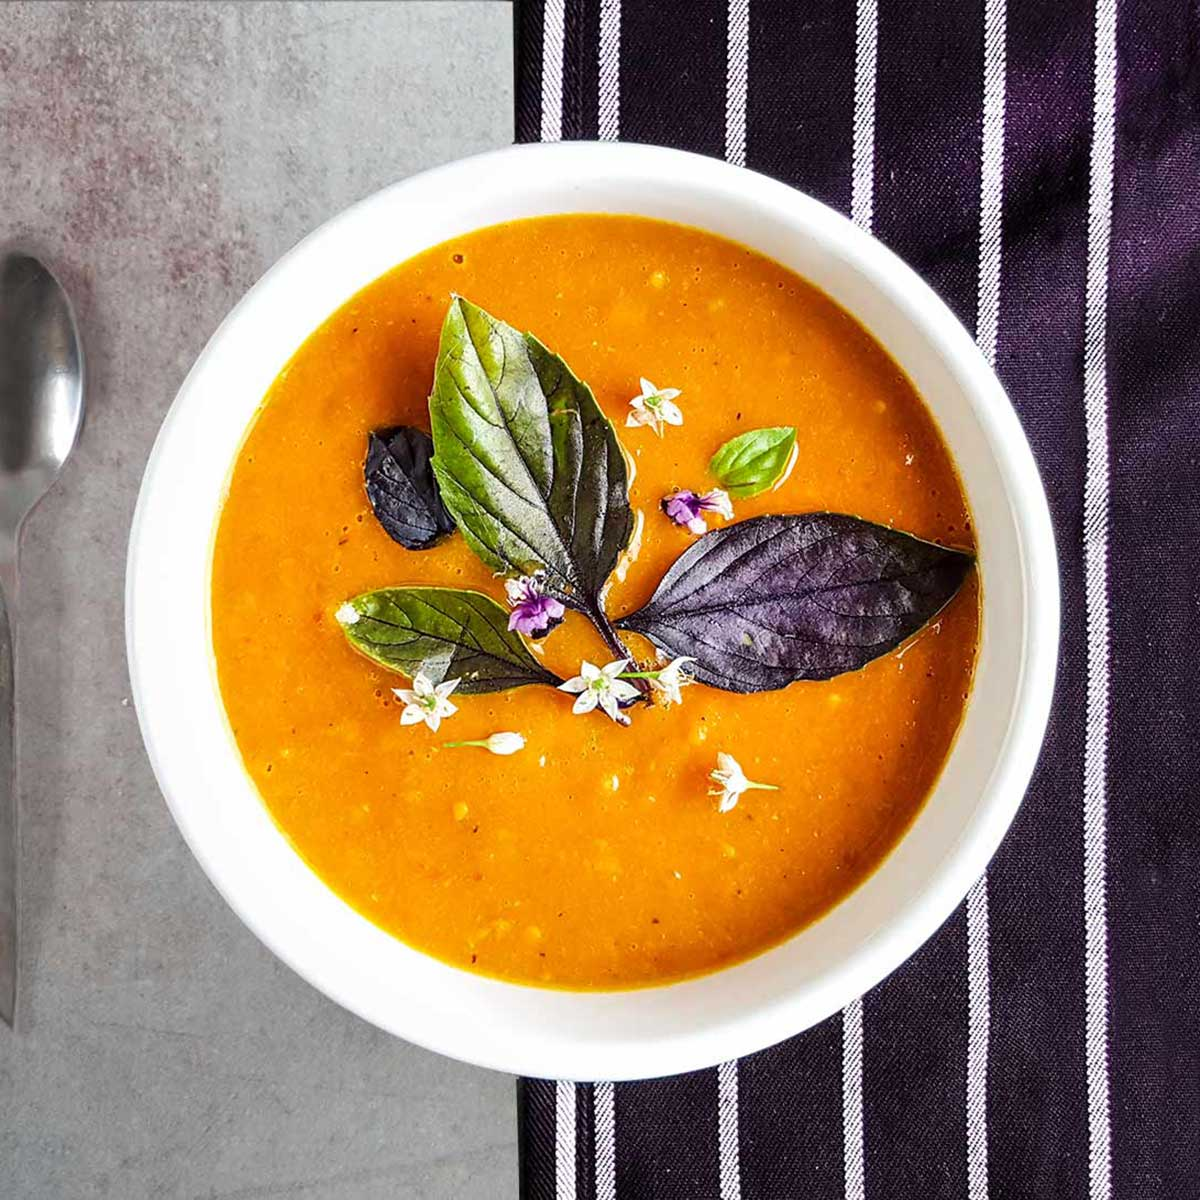 A bowl of tomato soup with basil leaves and flowers. Recipe from Mr. Wilkinson's cookbook